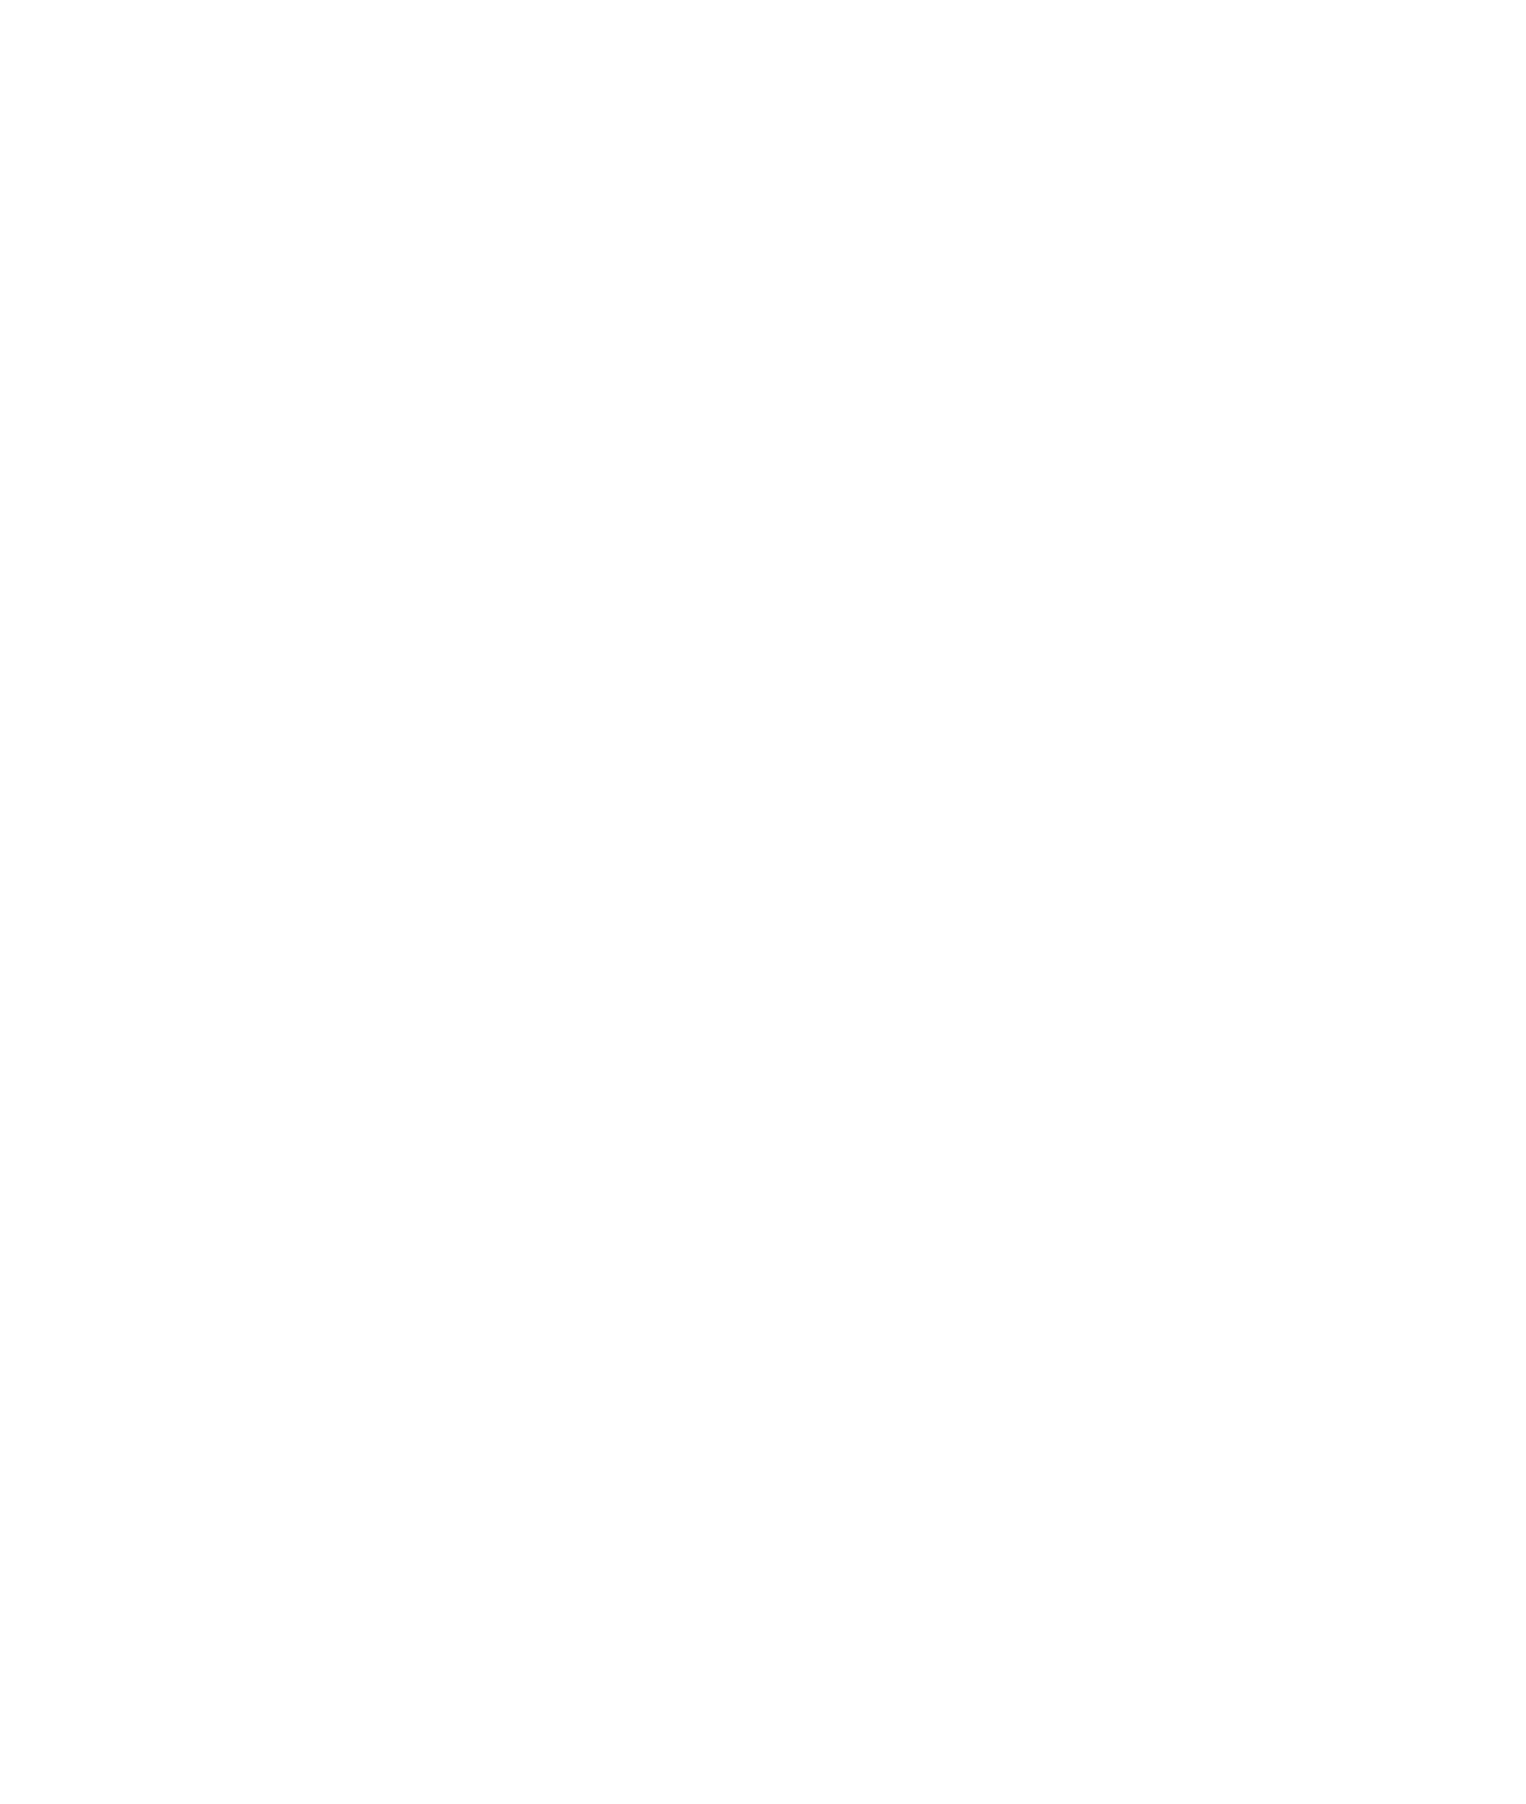 JHR Photography